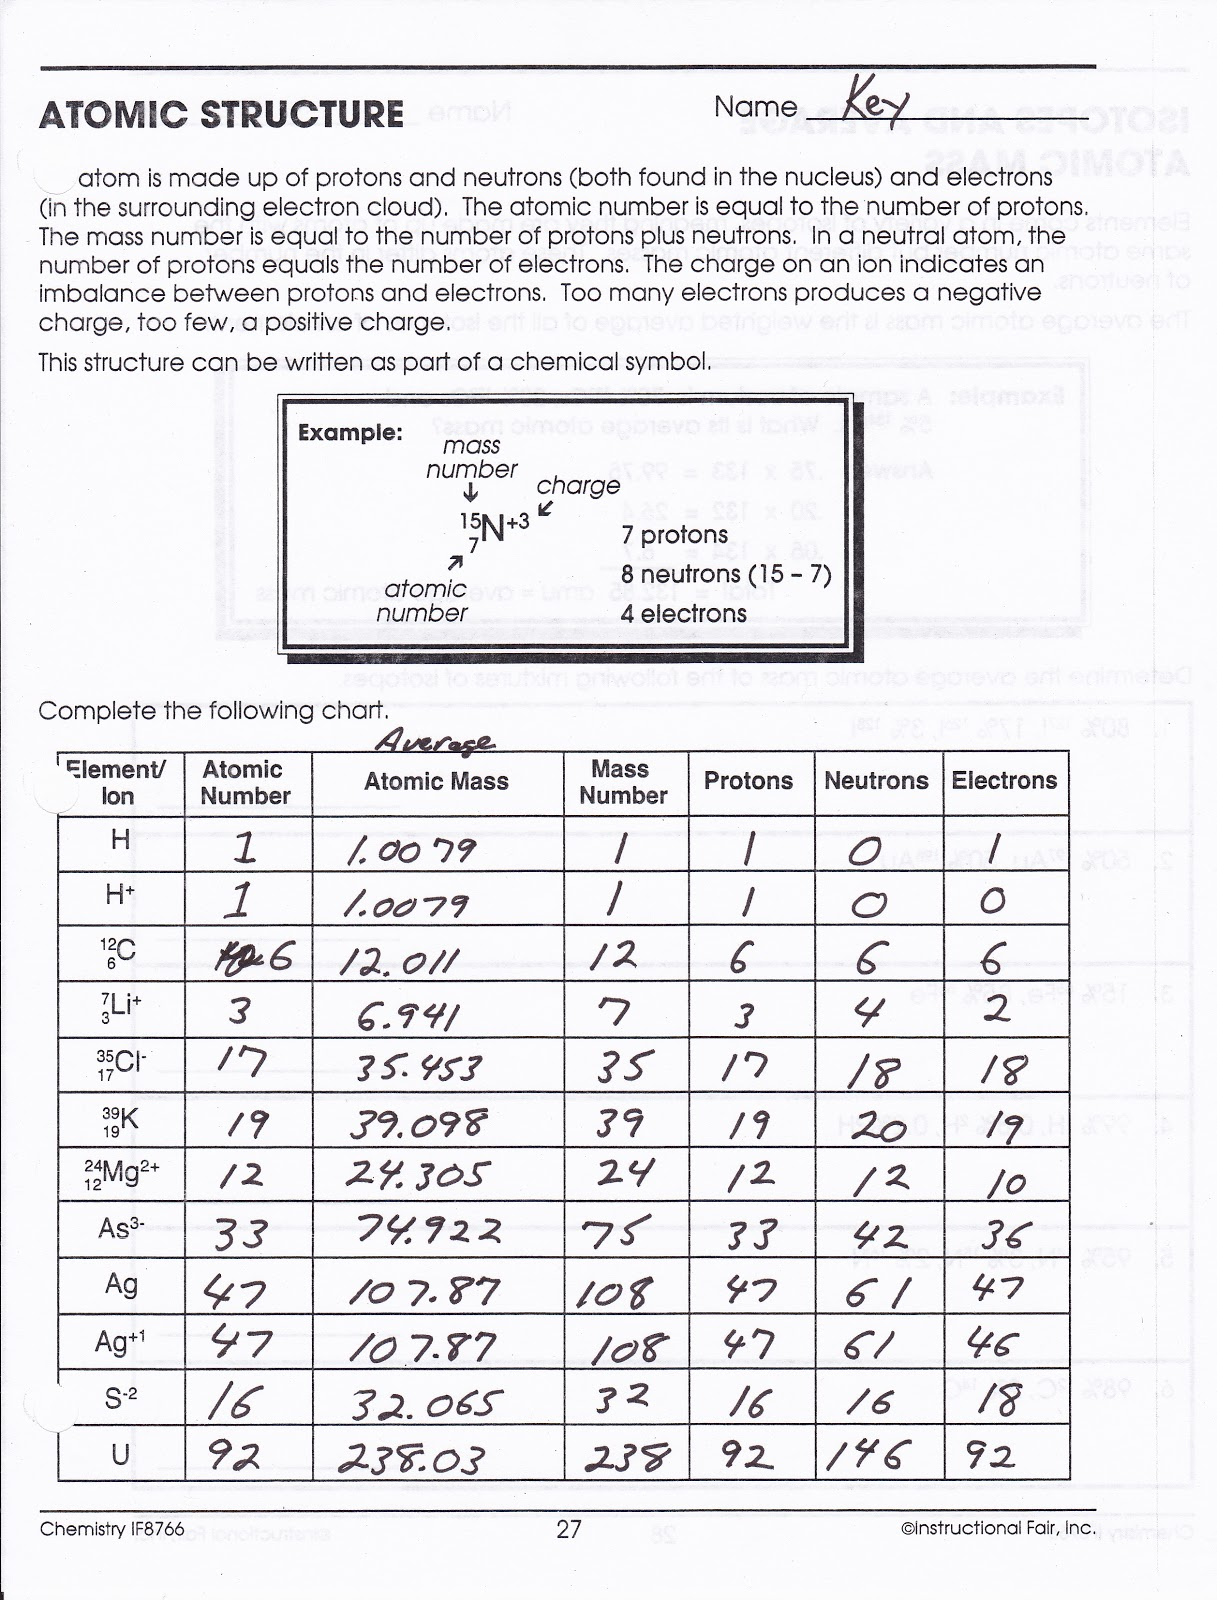 Chemistry Atomic Structure Worksheet Key